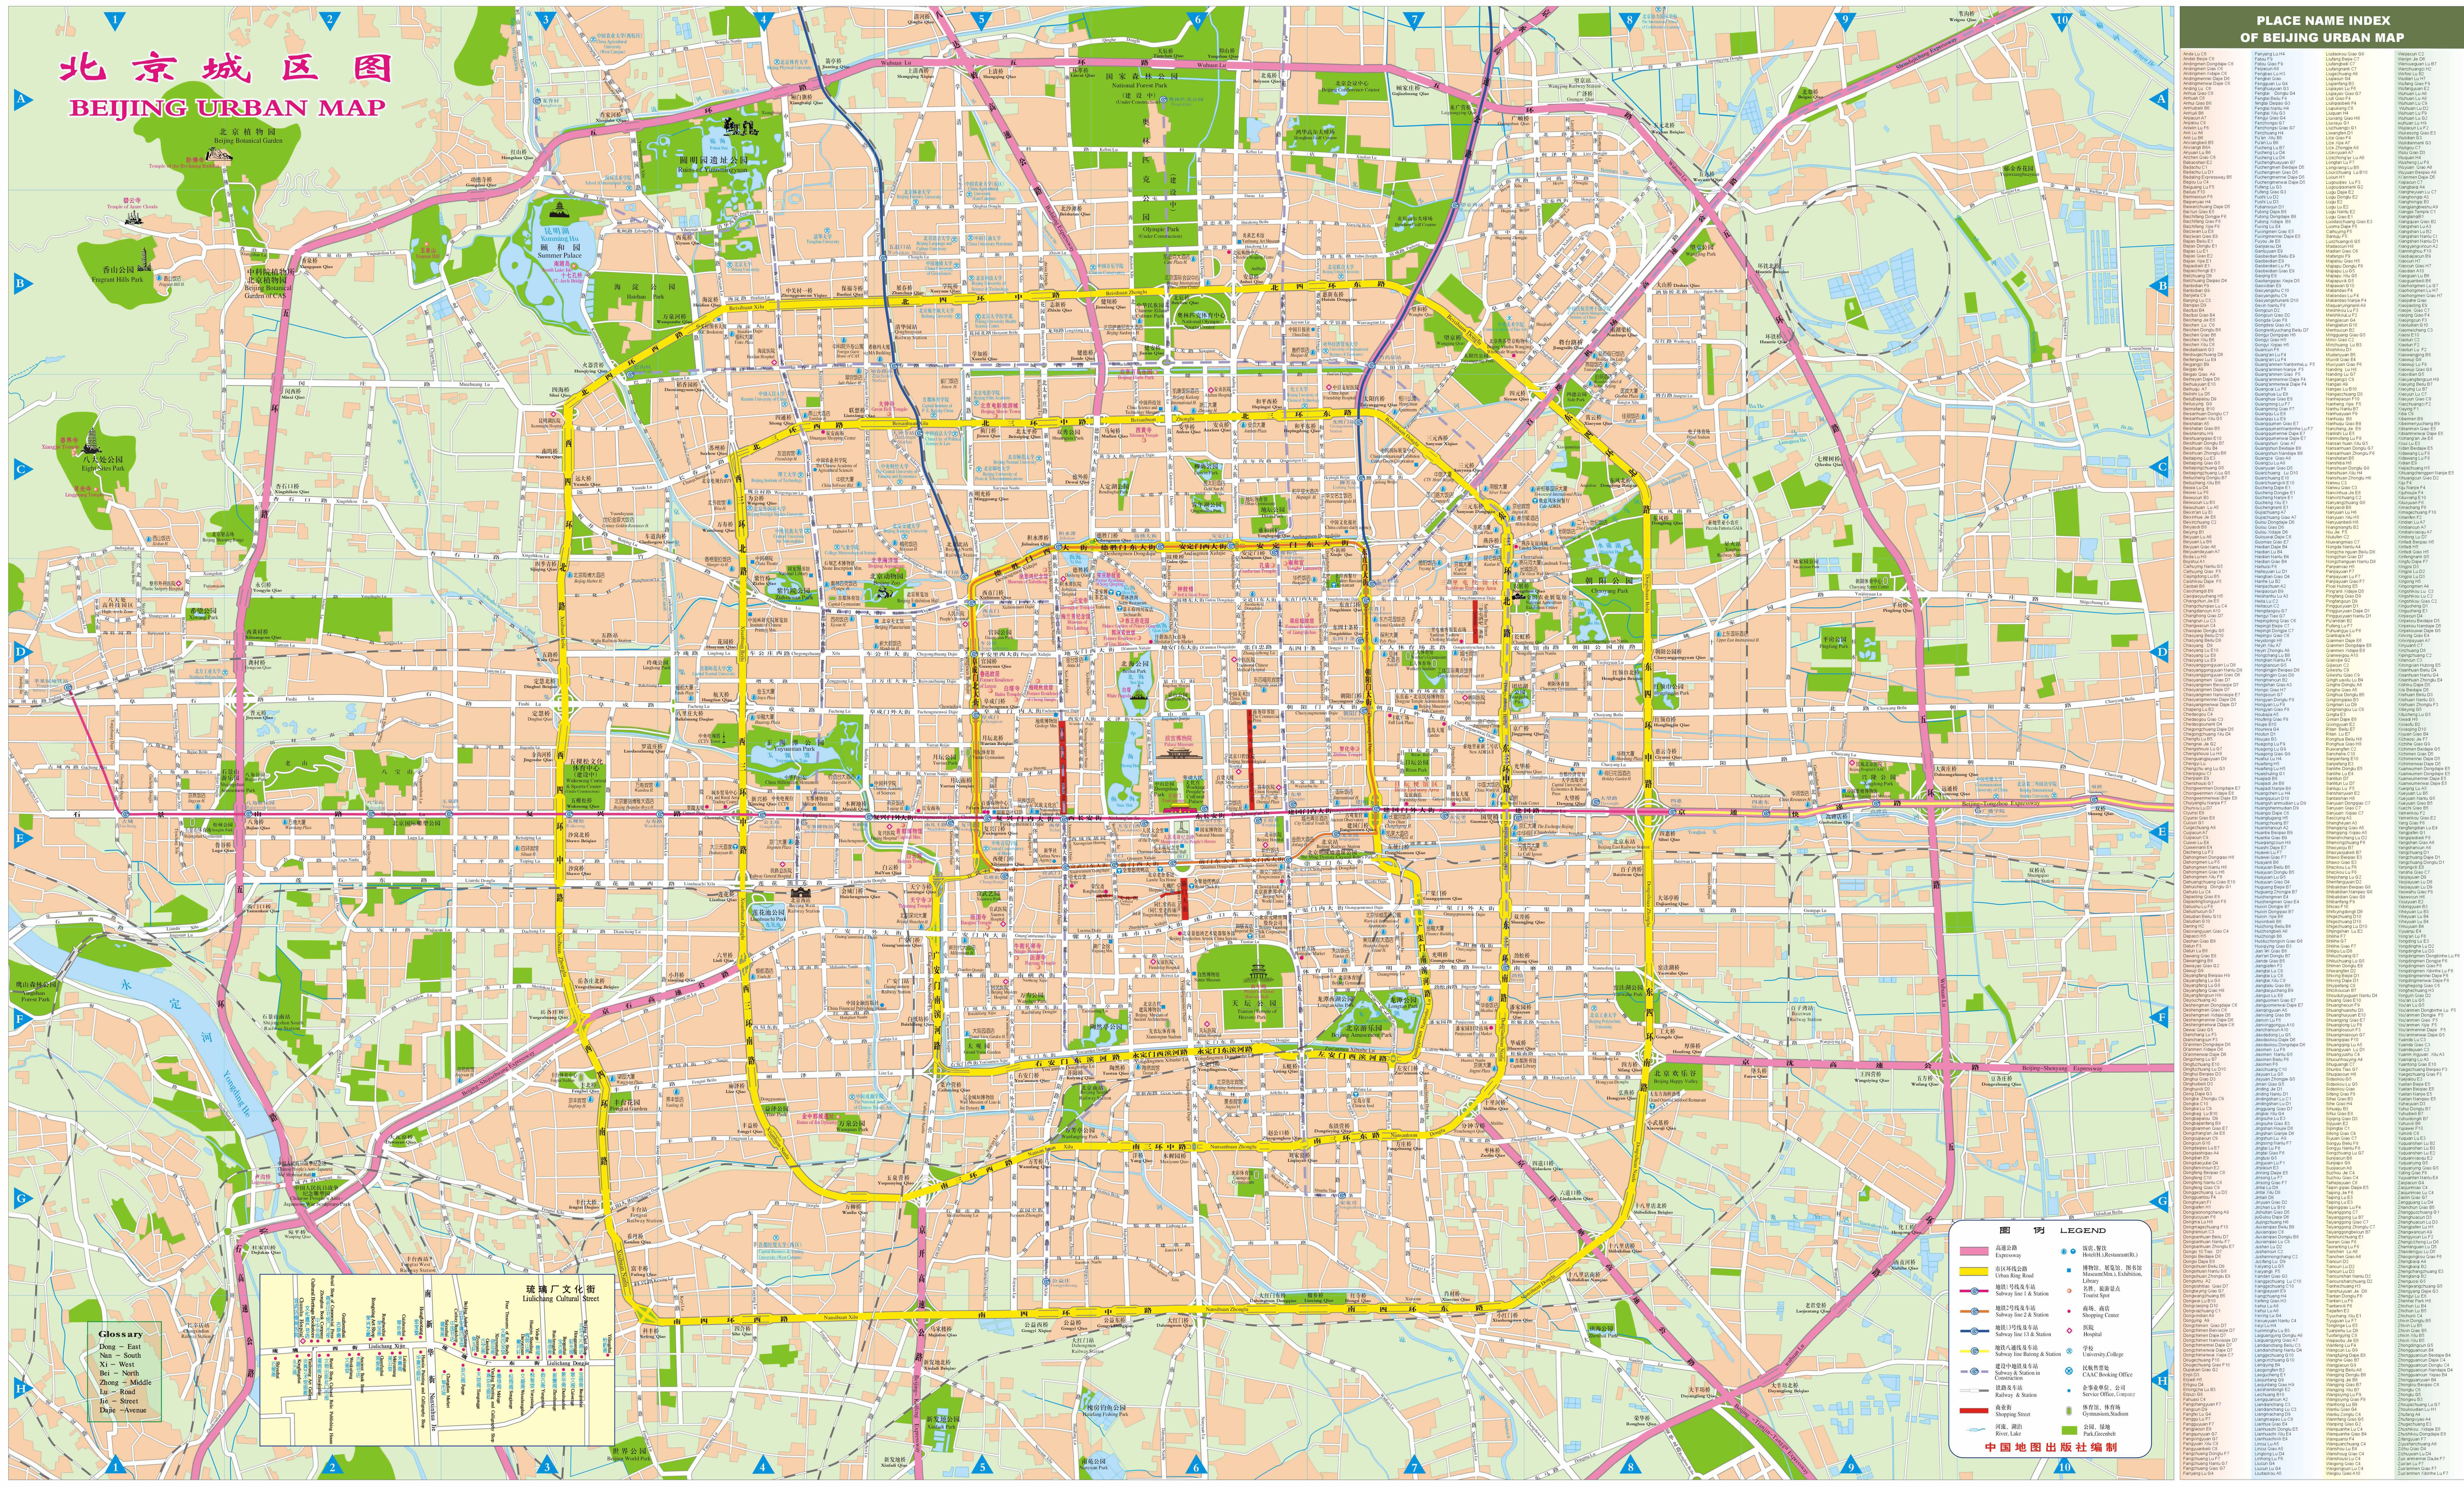 Beijing City Subway Map.Large Scale Detailed Street Map Of Beijing City Beijing China